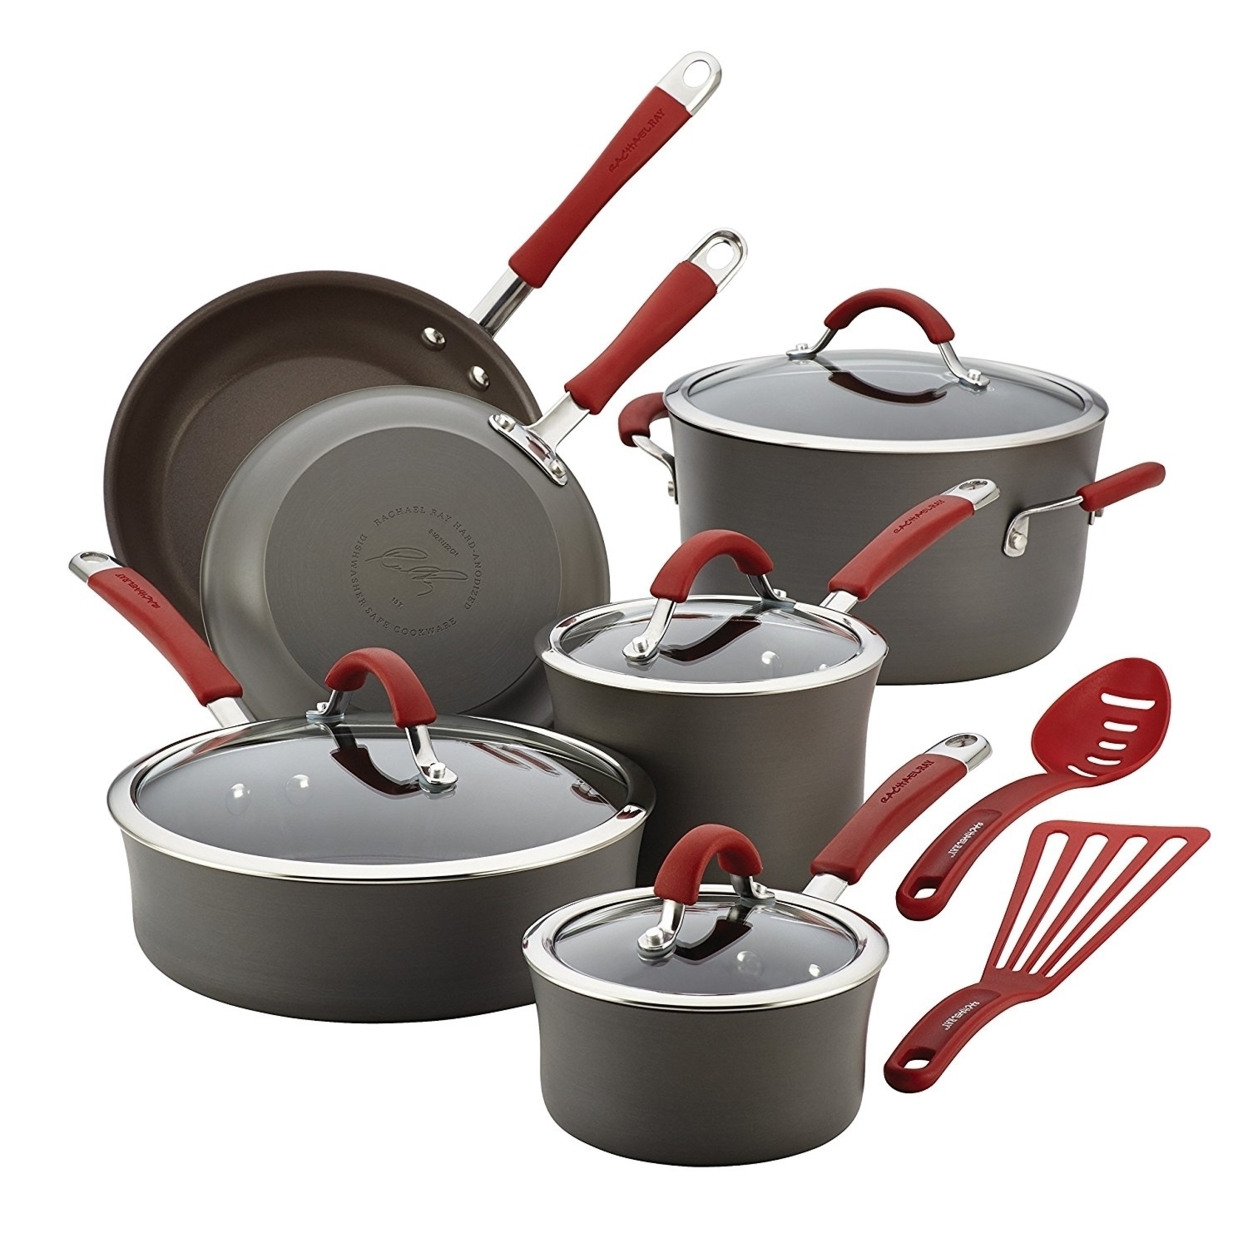 Rachael Ray 87630 Cucina Hard-Anodized Nonstick 12-Piece Cookware Set, Gray With Cranberry Red Handles 596e27342a00e45920203074